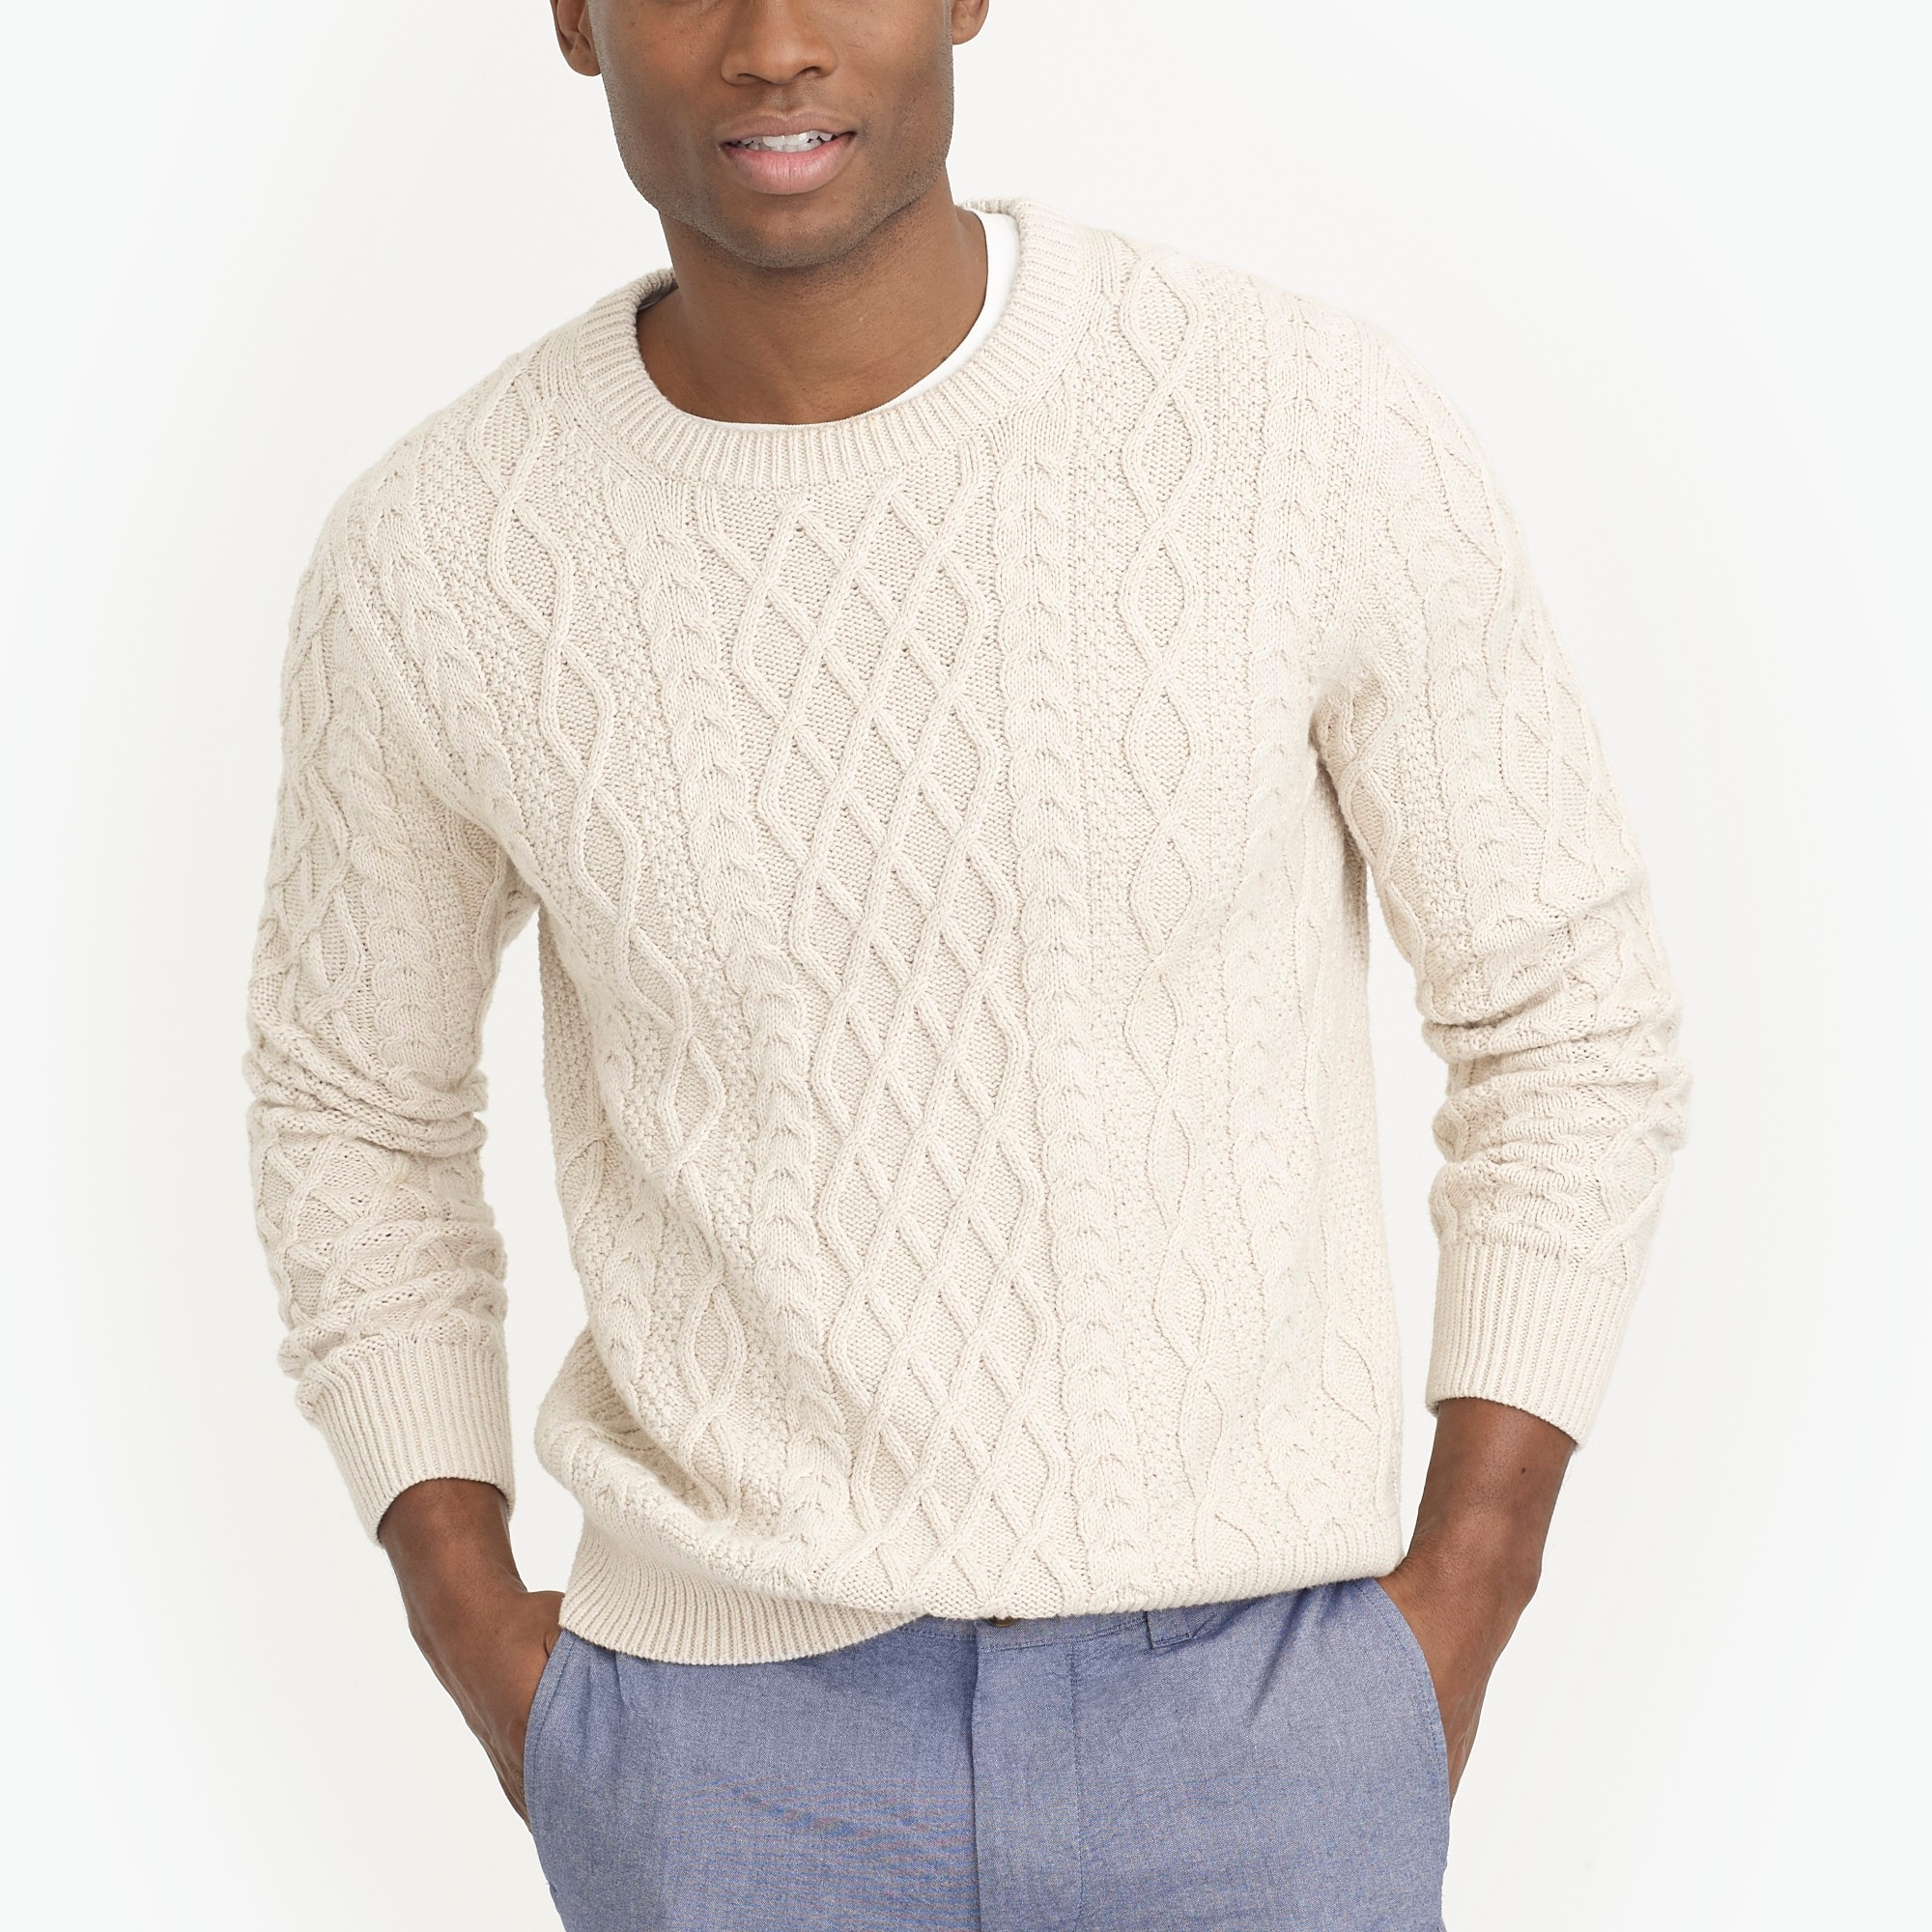 Fisherman cable crewneck sweater : FactoryMen Pullovers | Factory